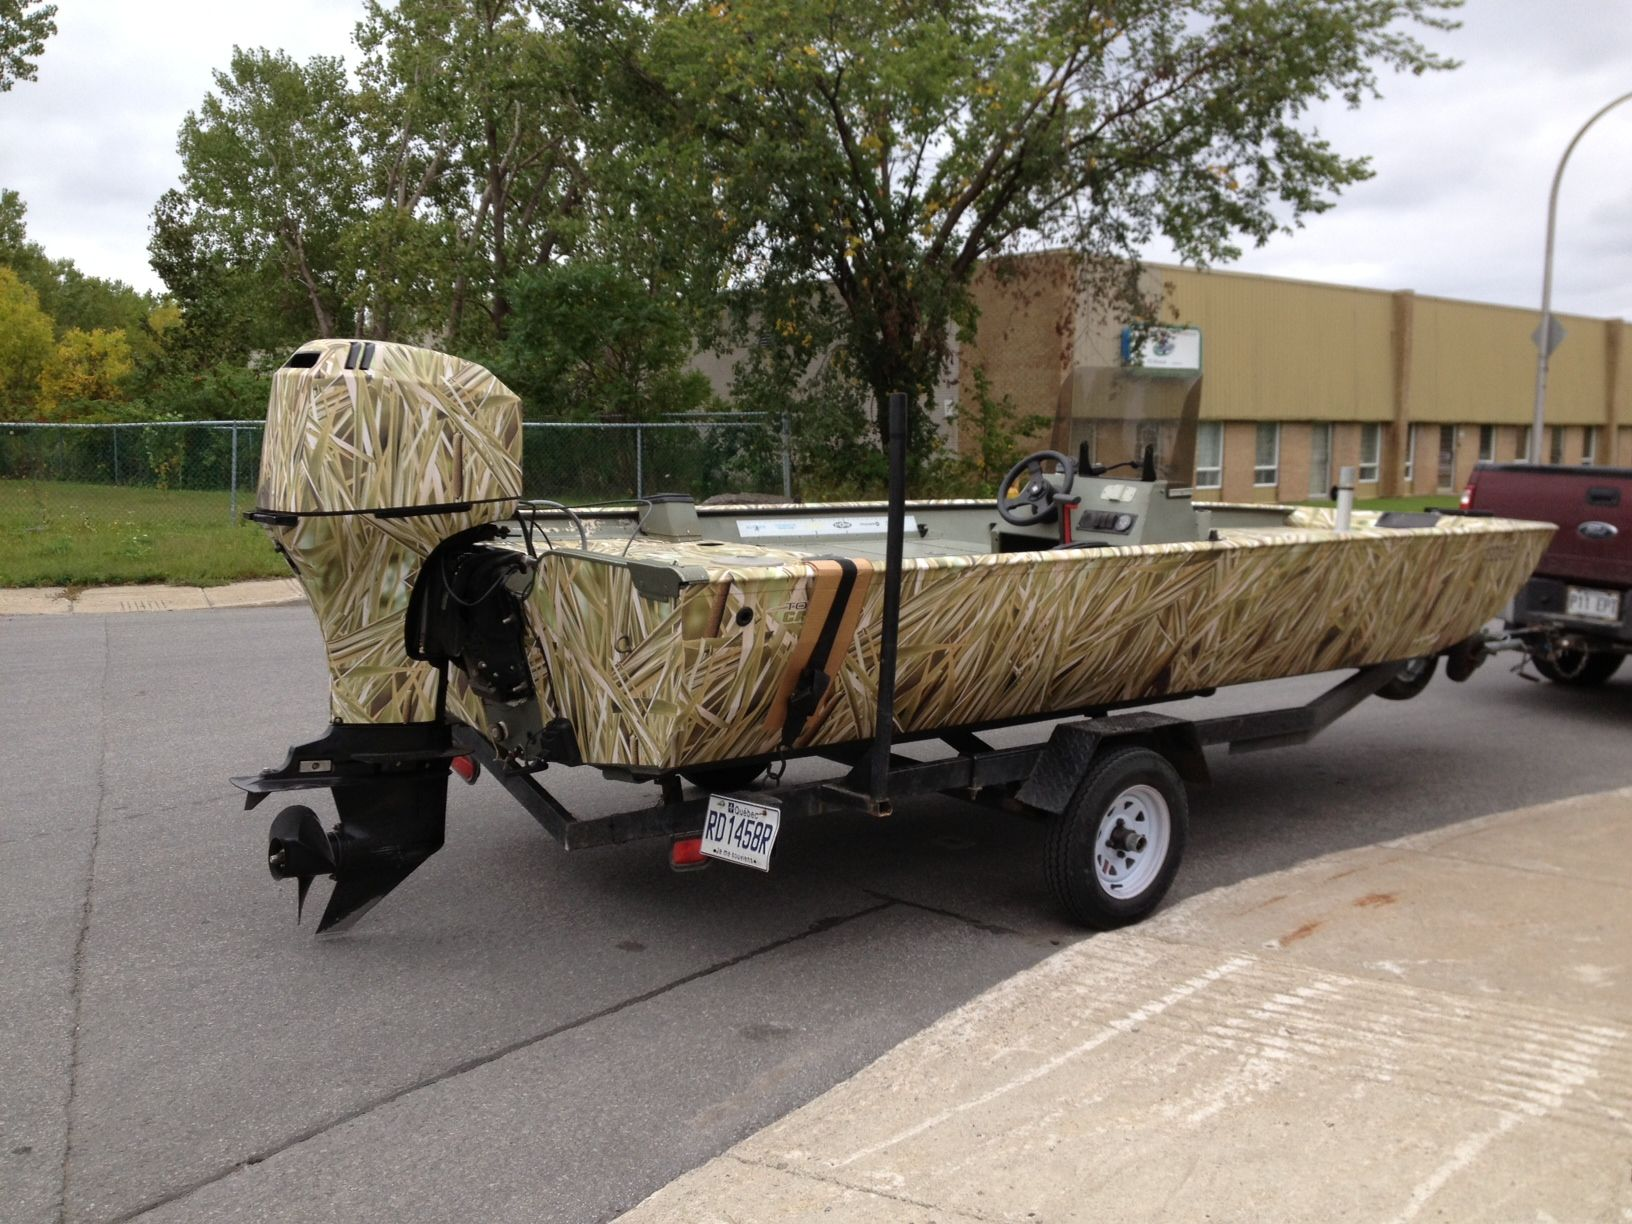 Jon Boat Wrapped With Total Camo Camouflage Camo Wrap